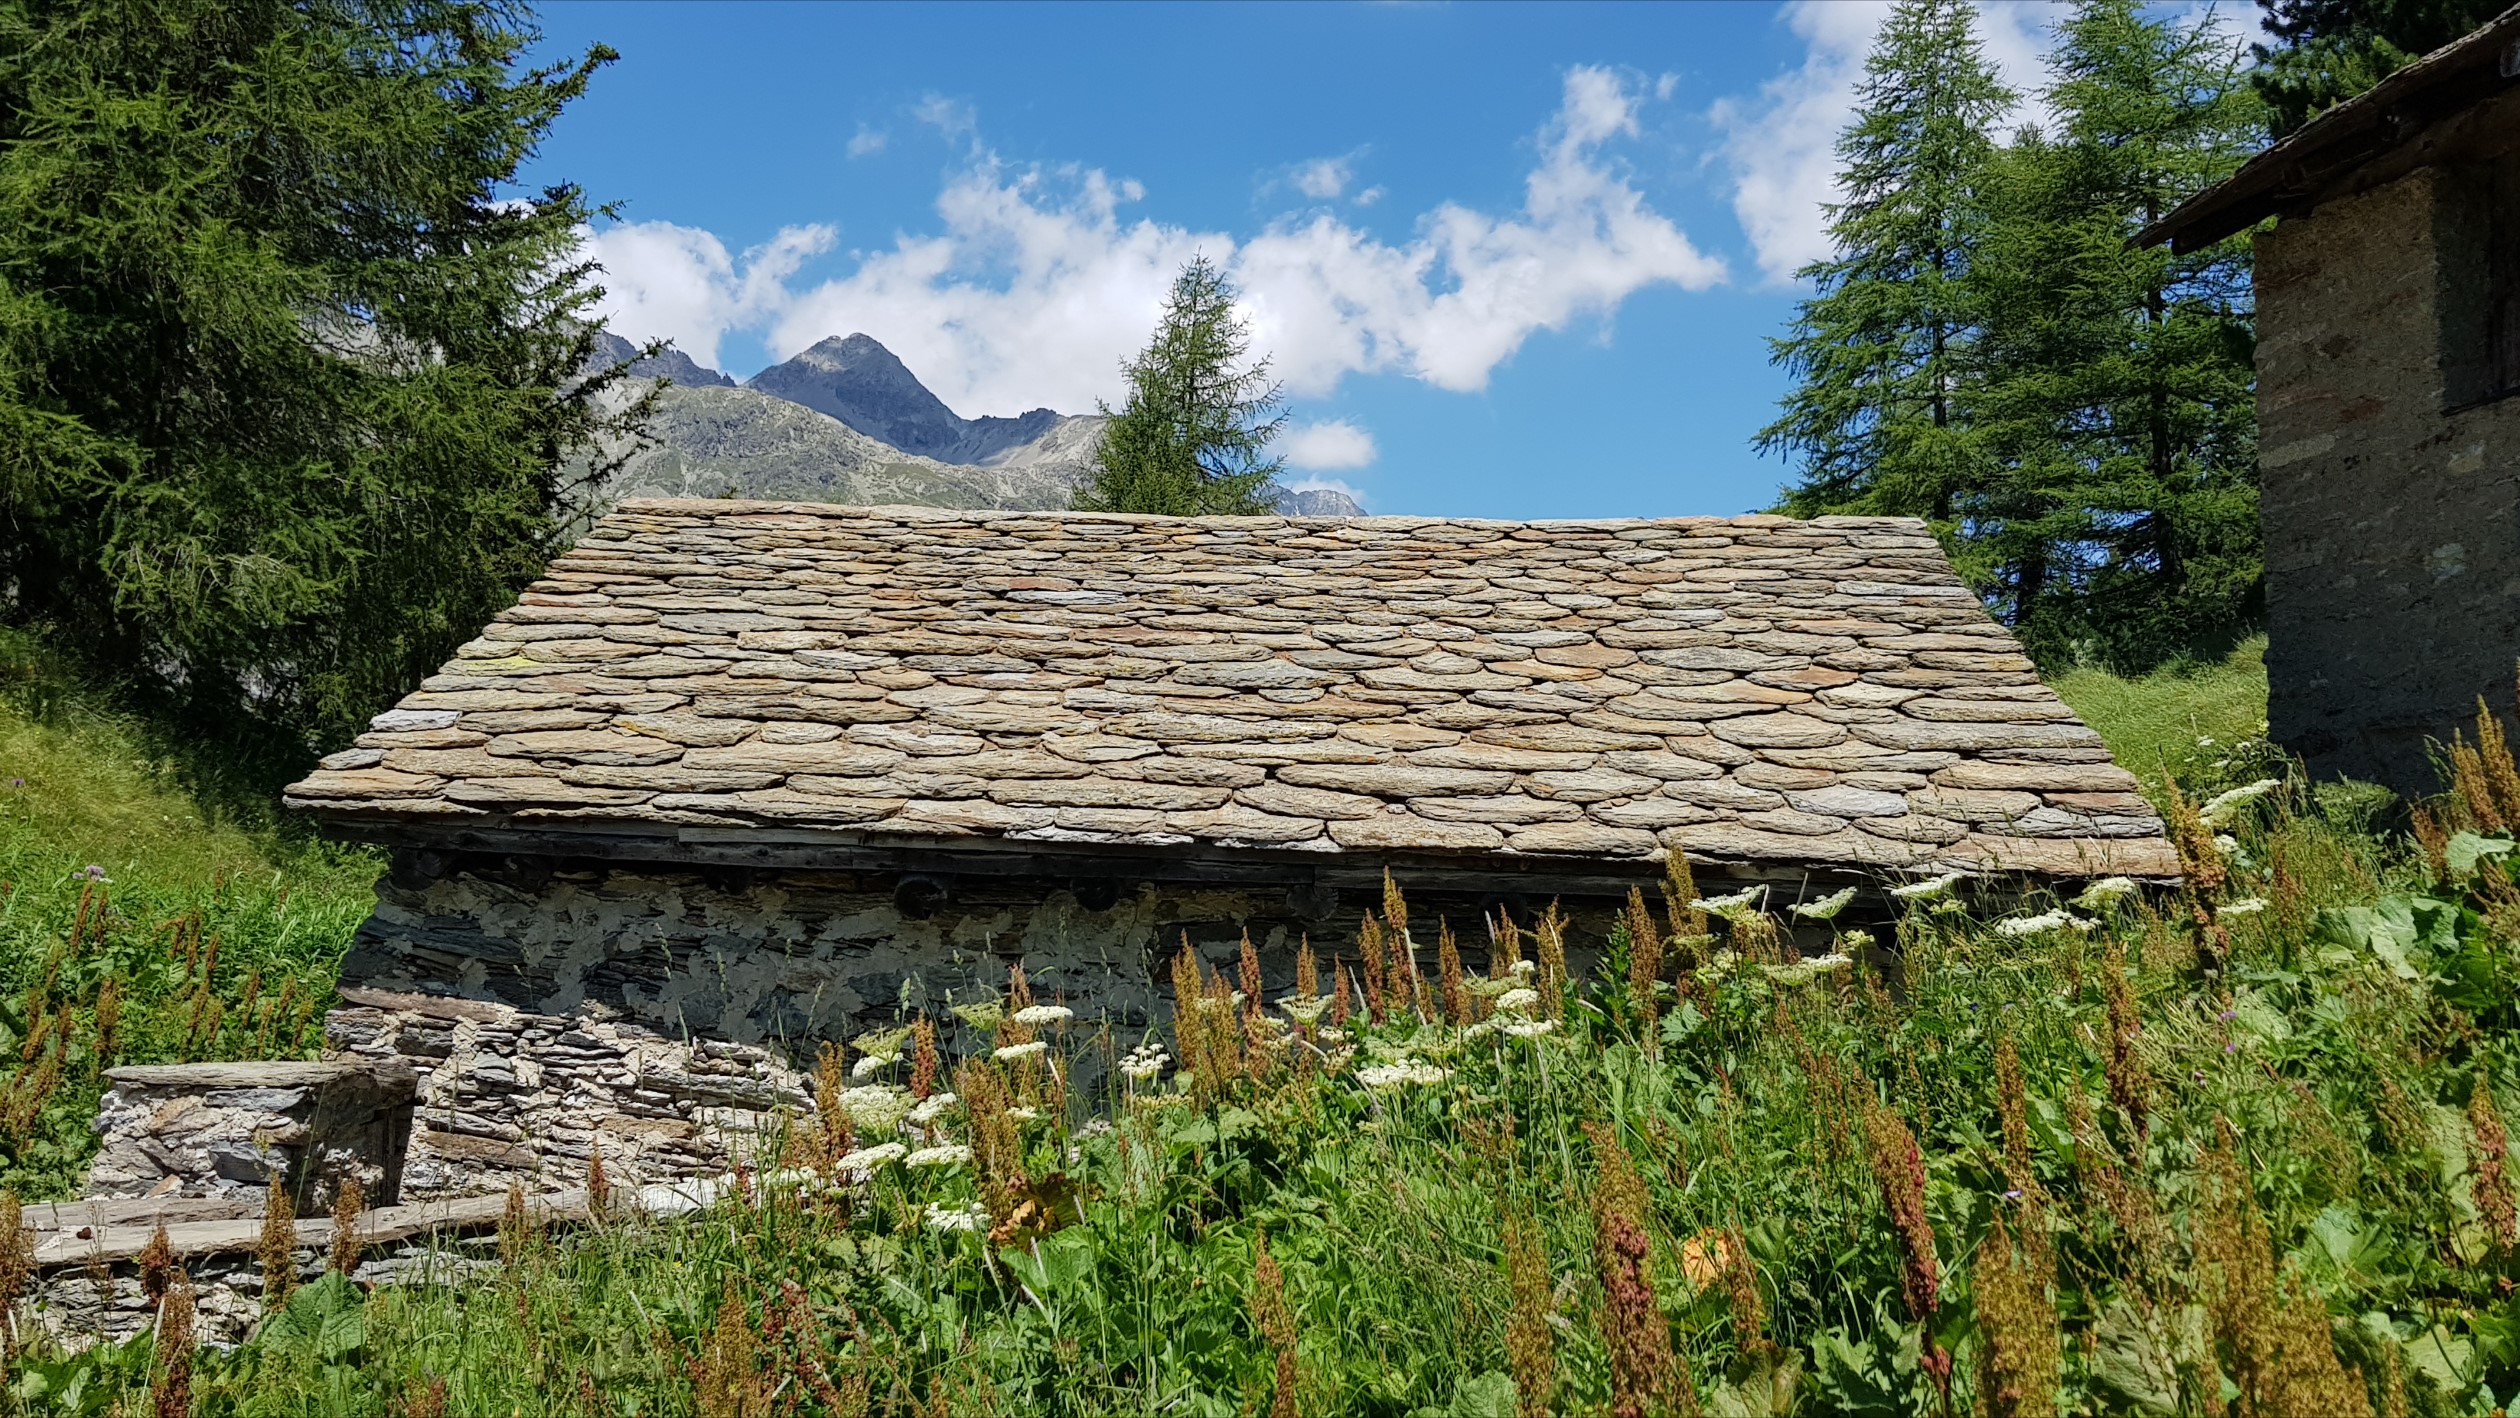 Engadine, Val Fex, Vanchera, typical stone roof